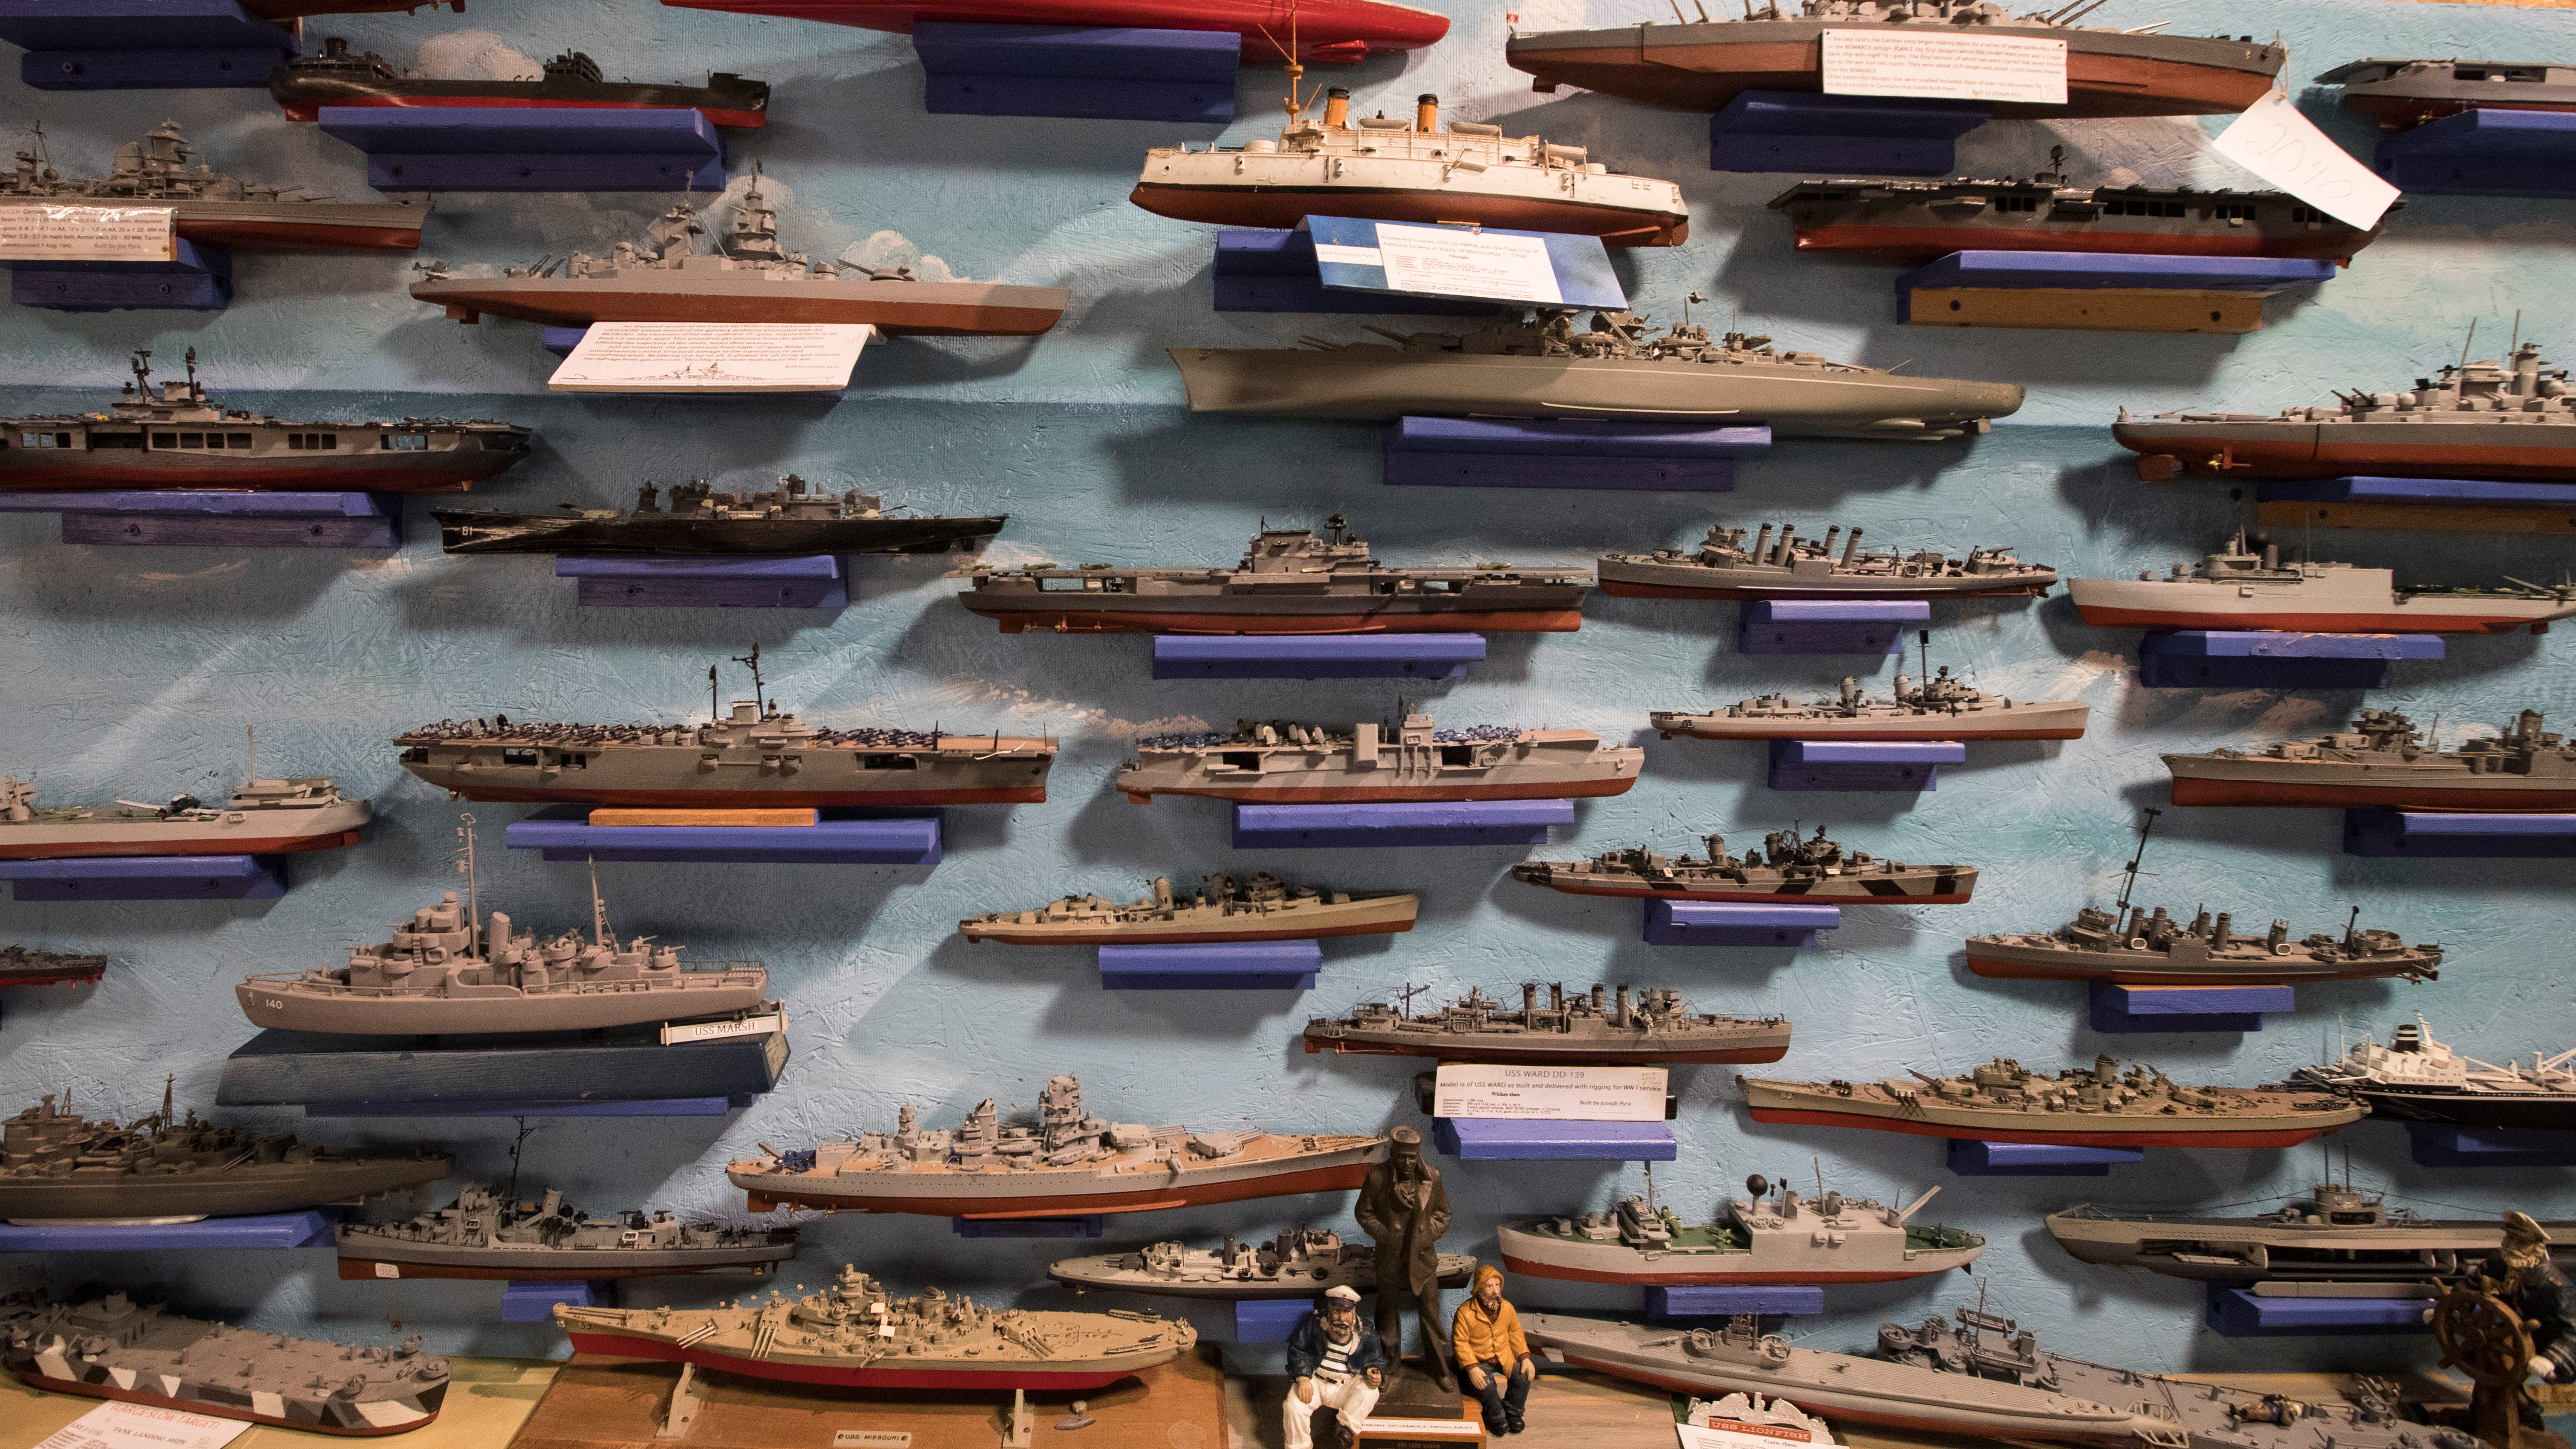 Model battle ships decorate the walls at the newly relocated Southwest Florida Military Museum. The museum has found a new home and will be opening soon at the former Disney store at Edison Mall.